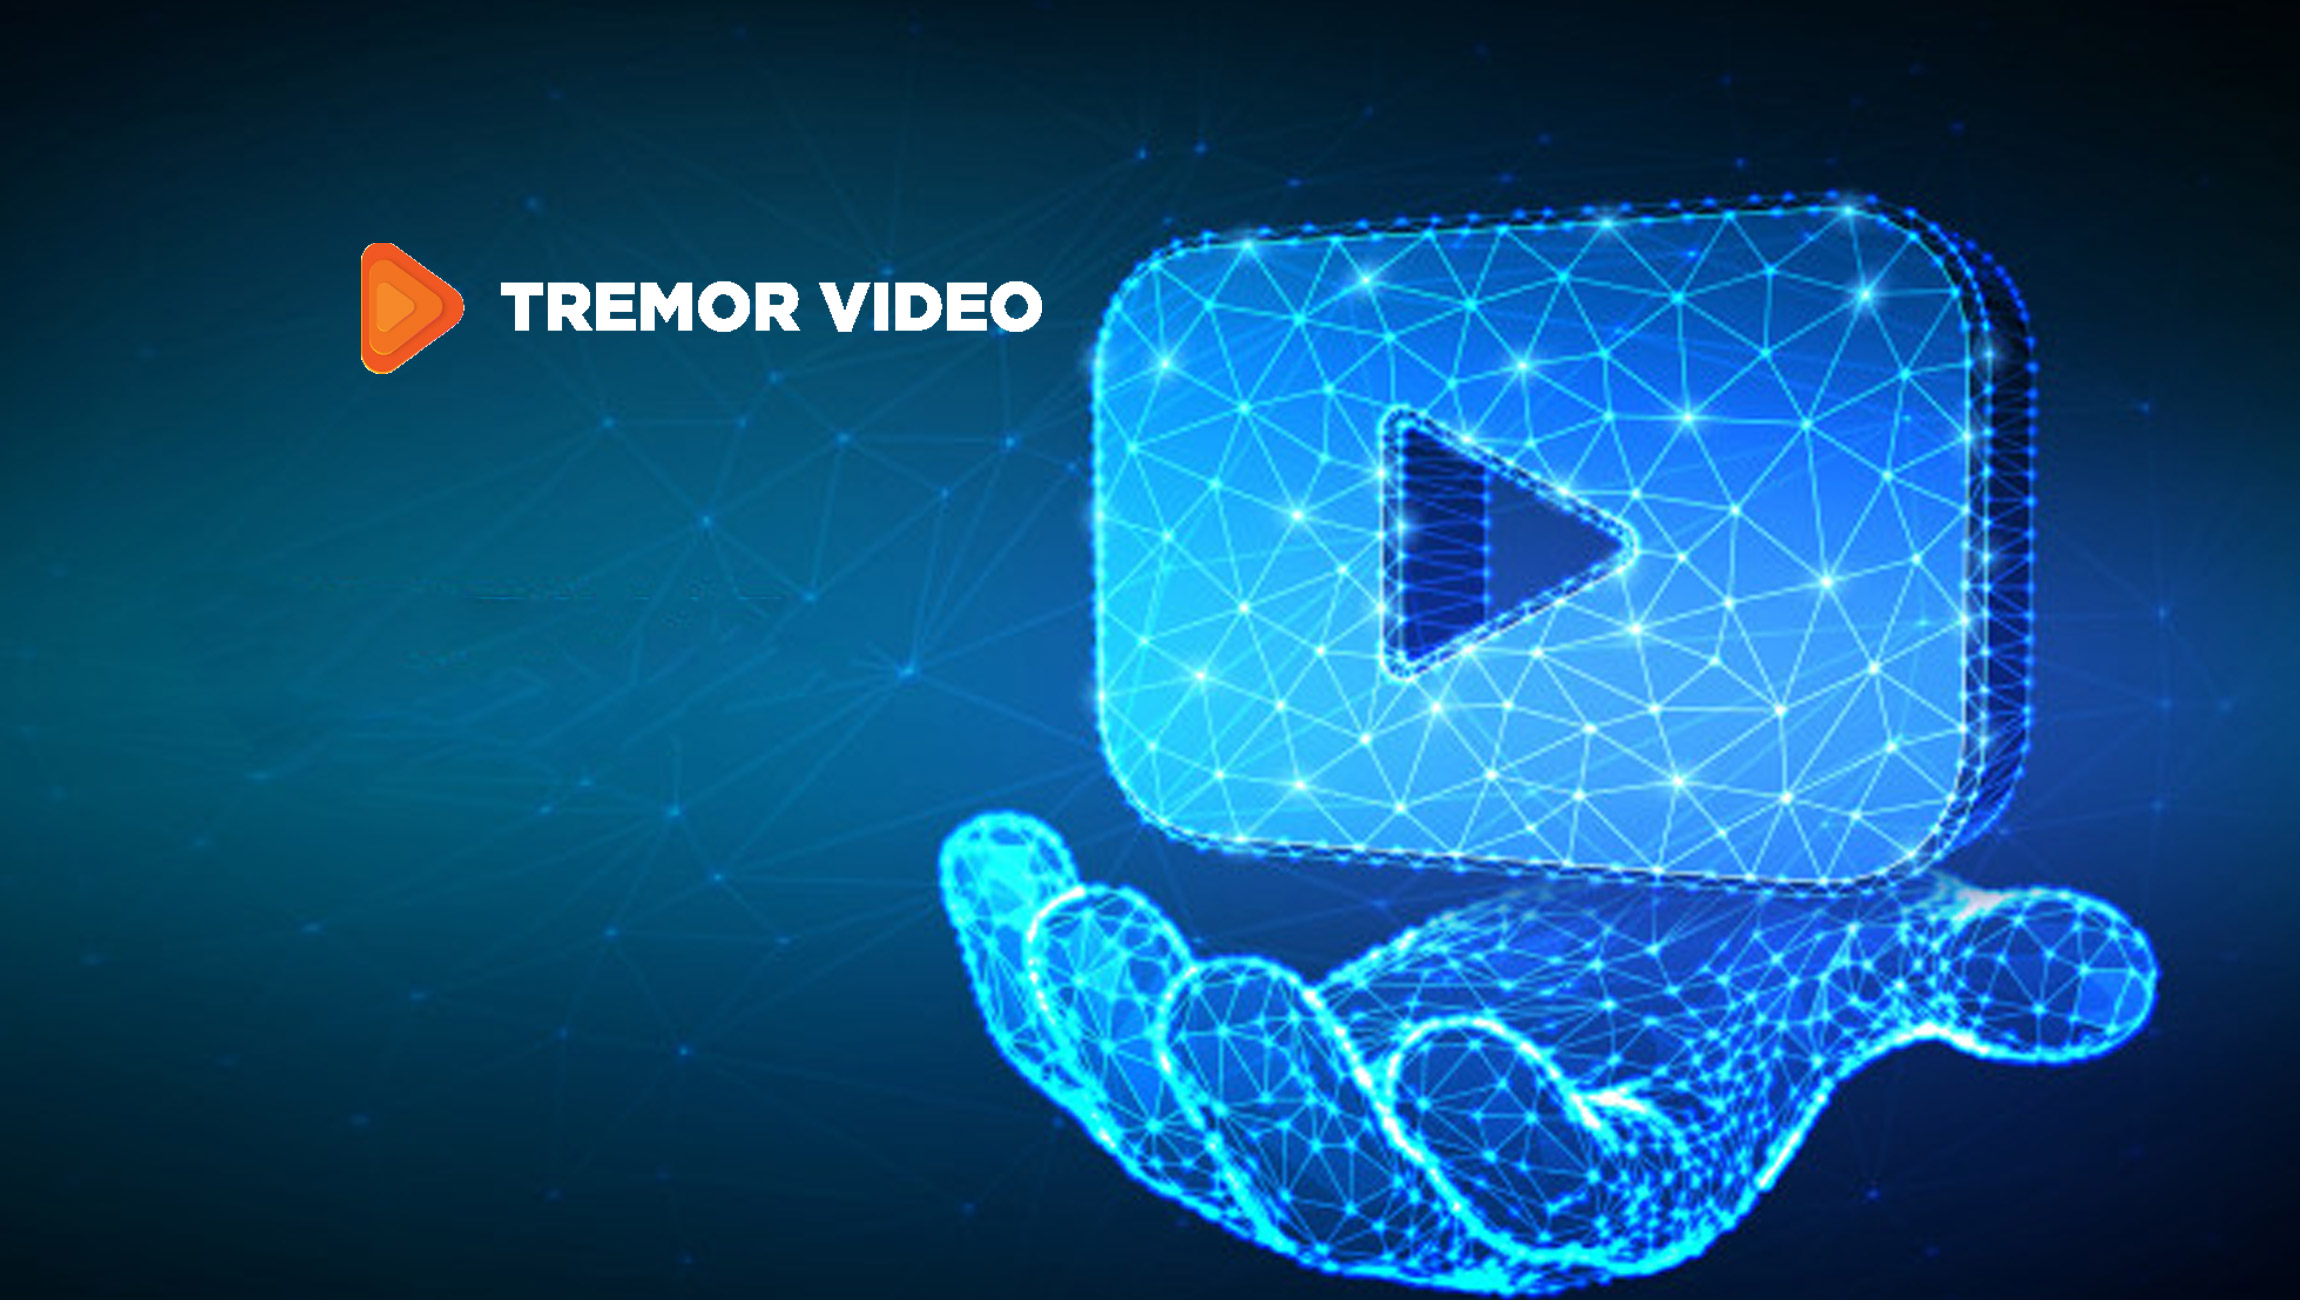 83%-of-Consumers-Likely-to-Maintain-or-Increase-Spend-in-the-Year-Ahead_-According-to-New-Research-from-Tremor-Video